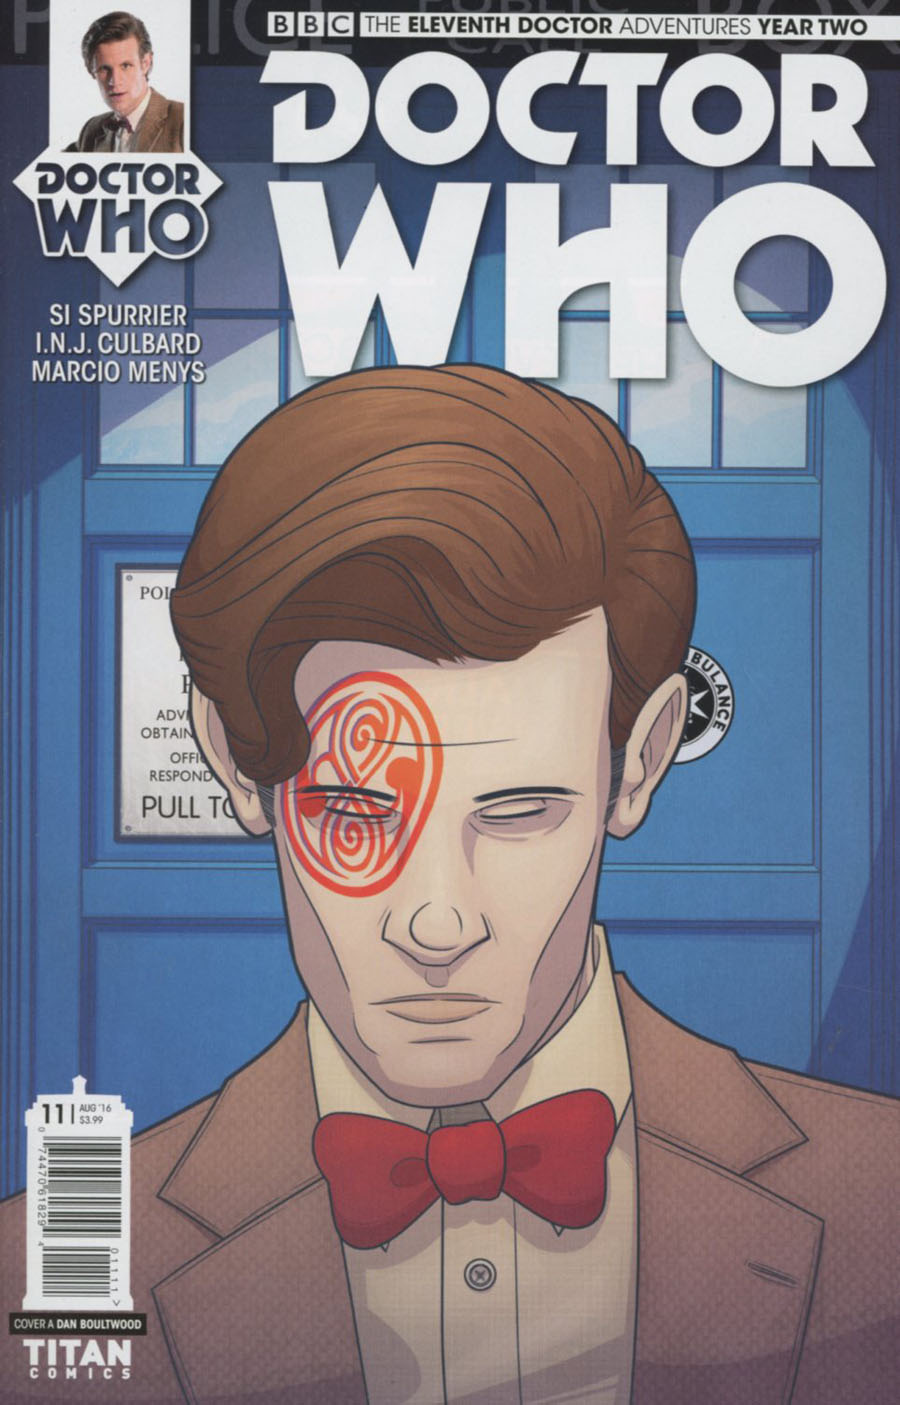 Doctor Who 11th Doctor Year Two #11 Cover A Regular Dan Boultwood Cover